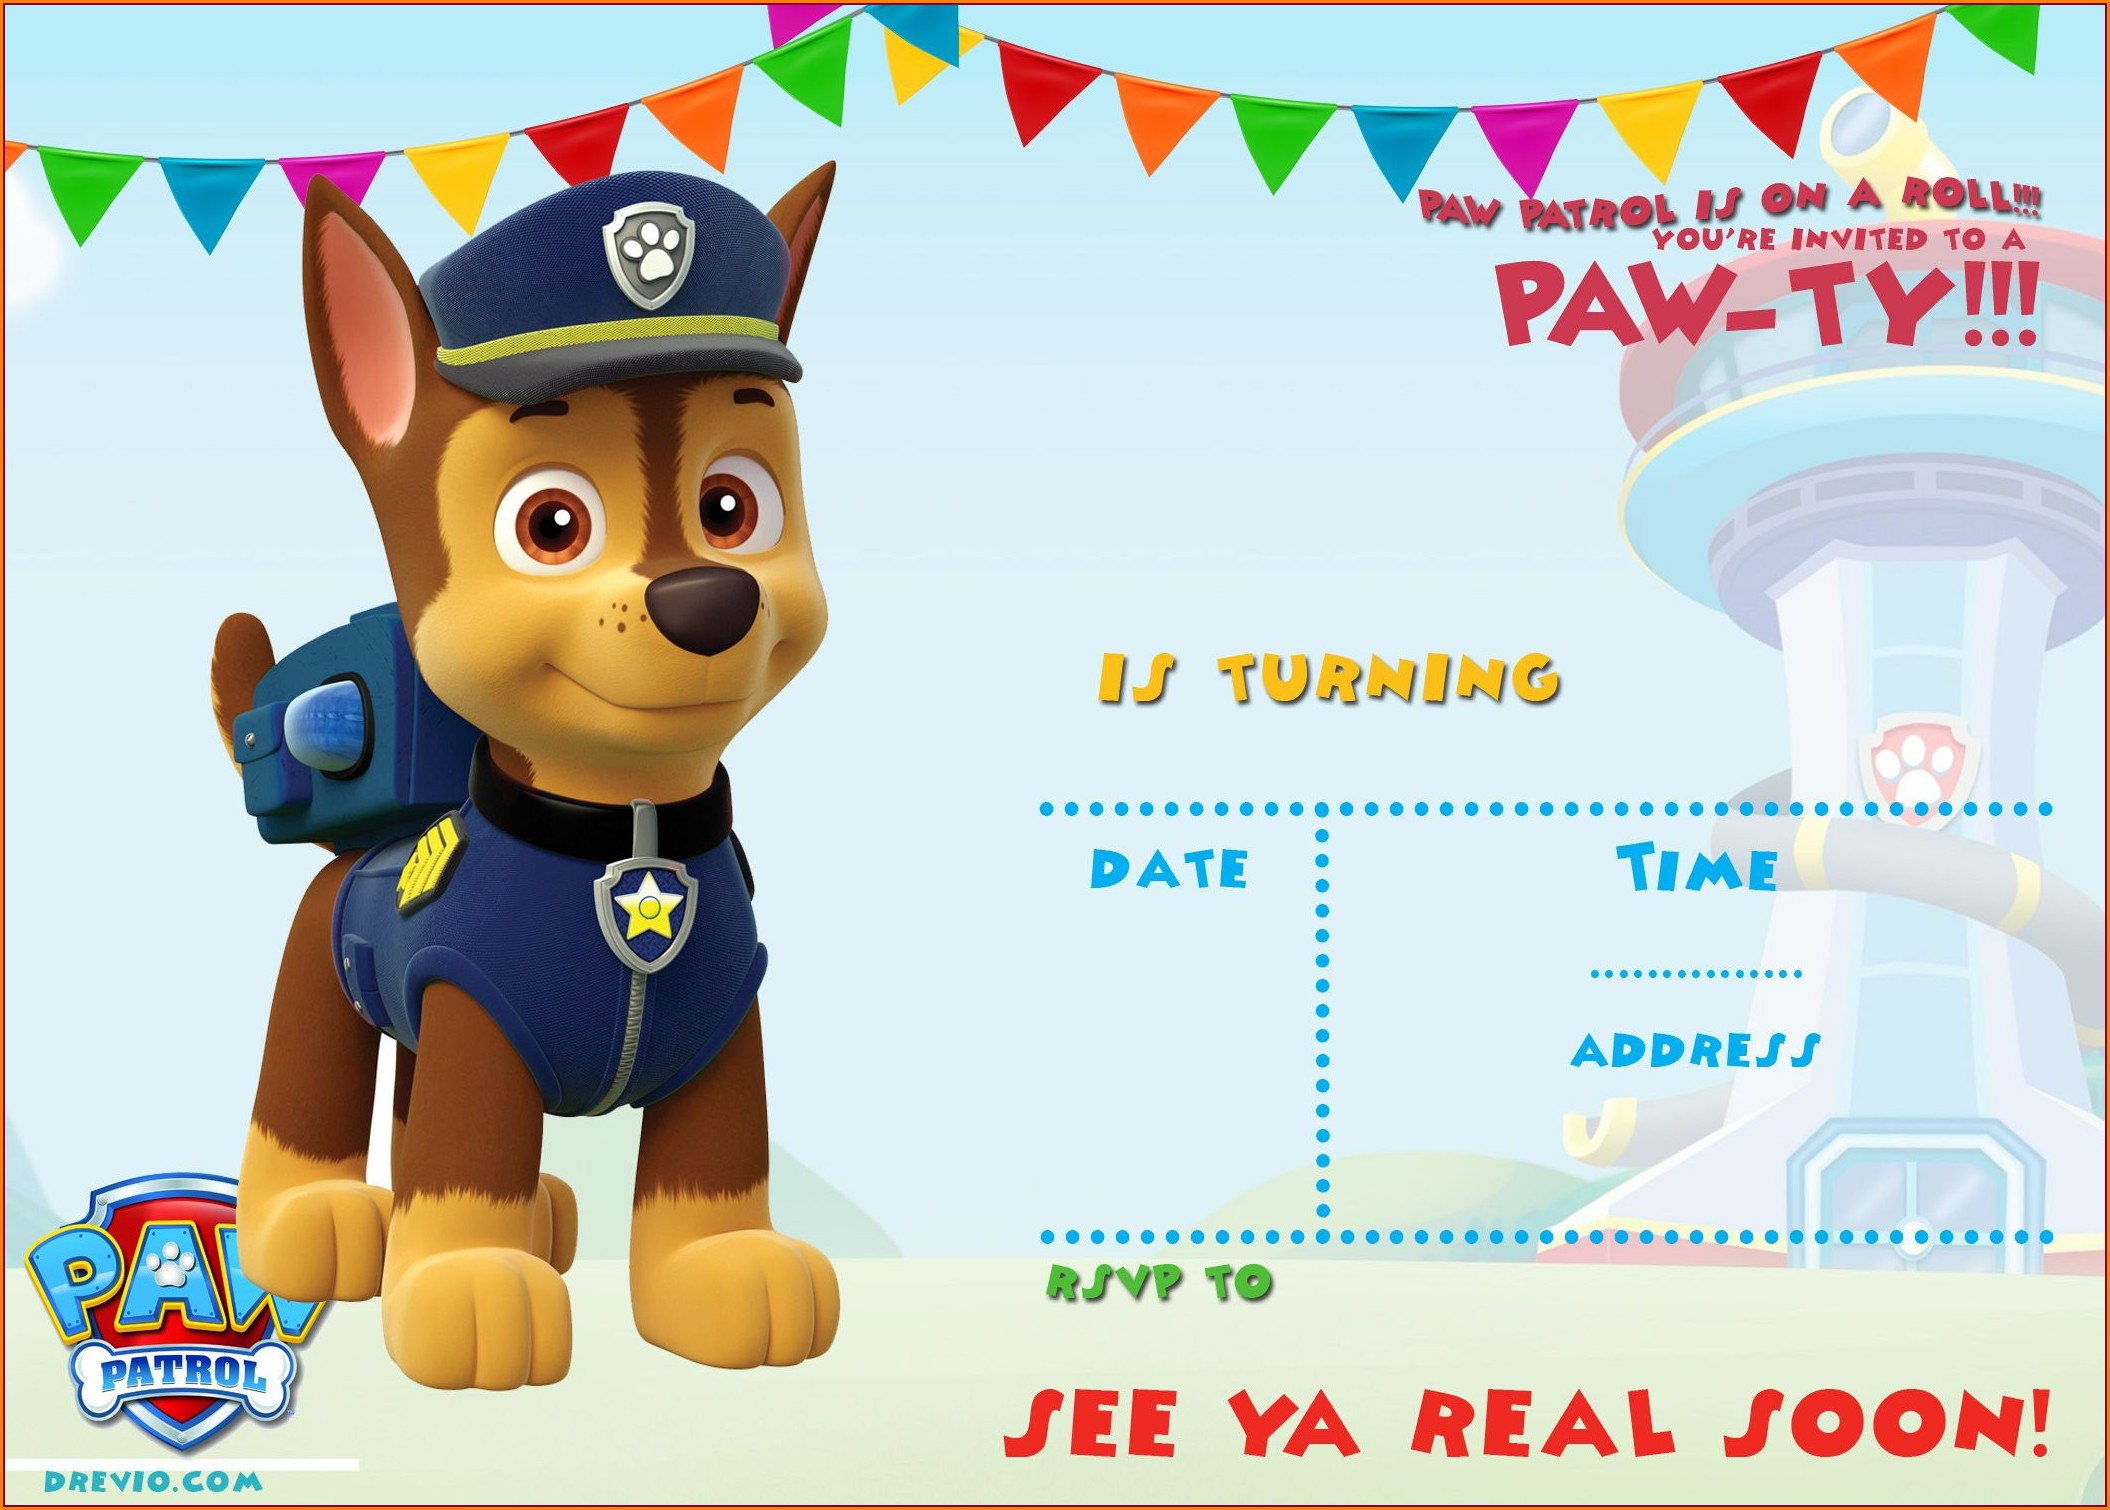 Paw Patrol Invitation Templates Free Download